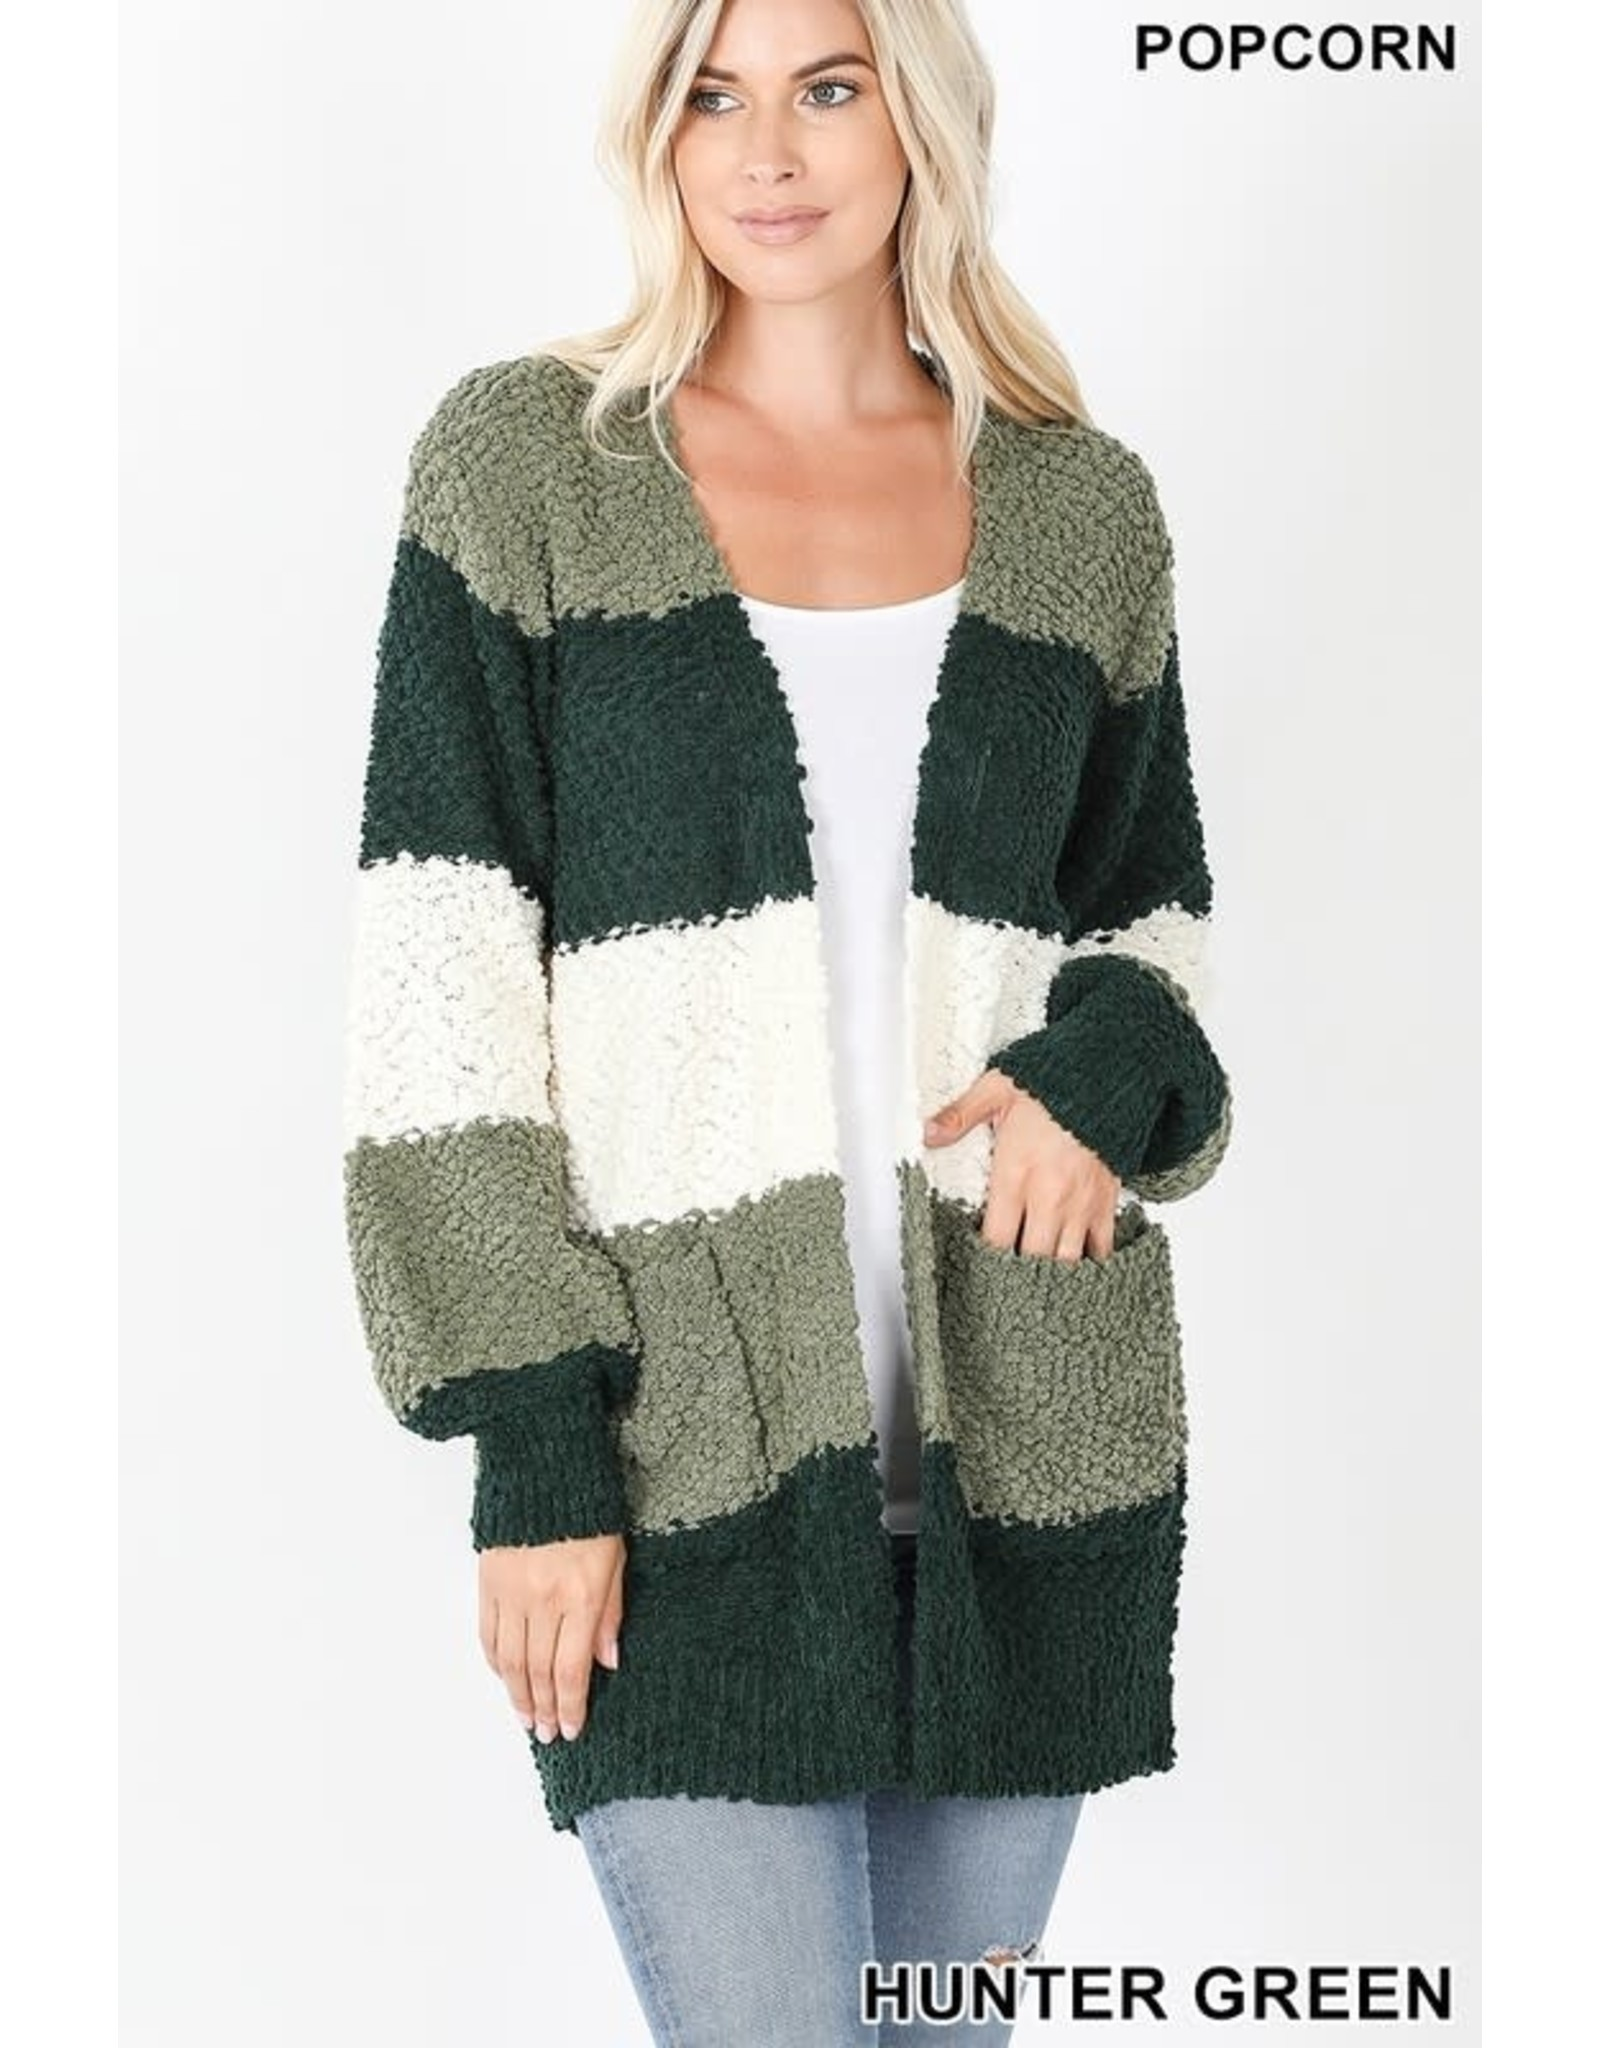 HUNTER GREEN COLORBLOCK BALLOON SLEEVE POPCORN CARDI W/ POCKETS